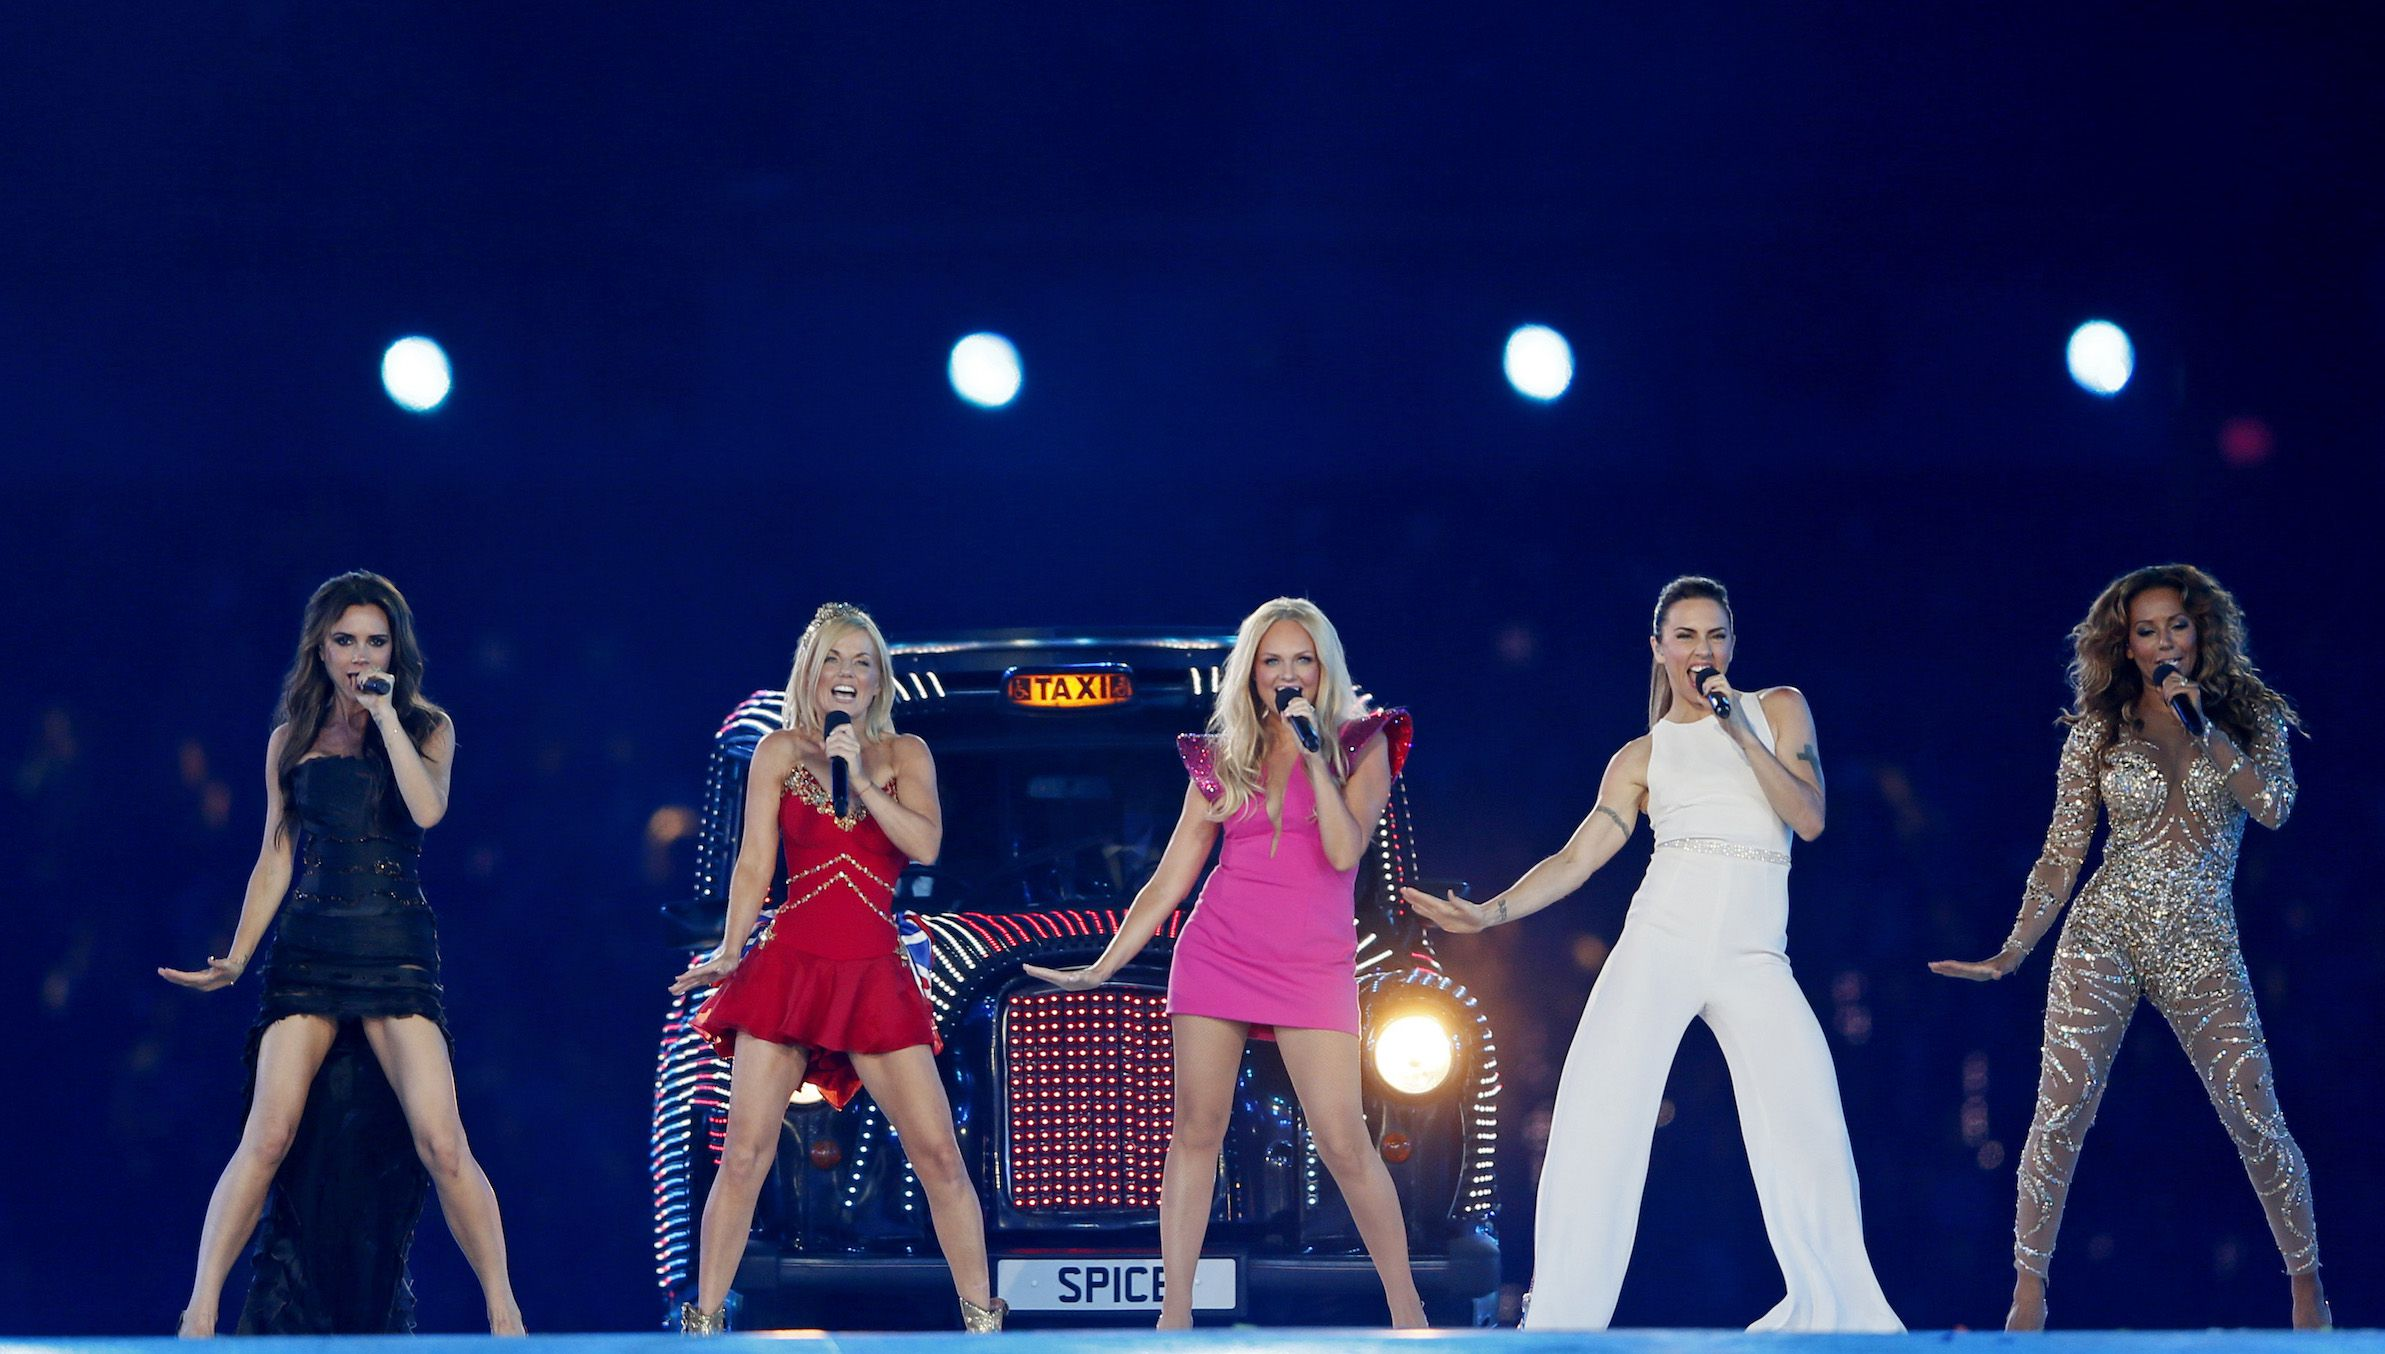 The Spice Girls perform during the closing ceremony of the London 2012 Olympic Games at the Olympic Stadium, August 12, 2012.             REUTERS/Stefan Wermuth (BRITAIN  - Tags: SPORT OLYMPICS ENTERTAINMENT)   - RTR36SPB